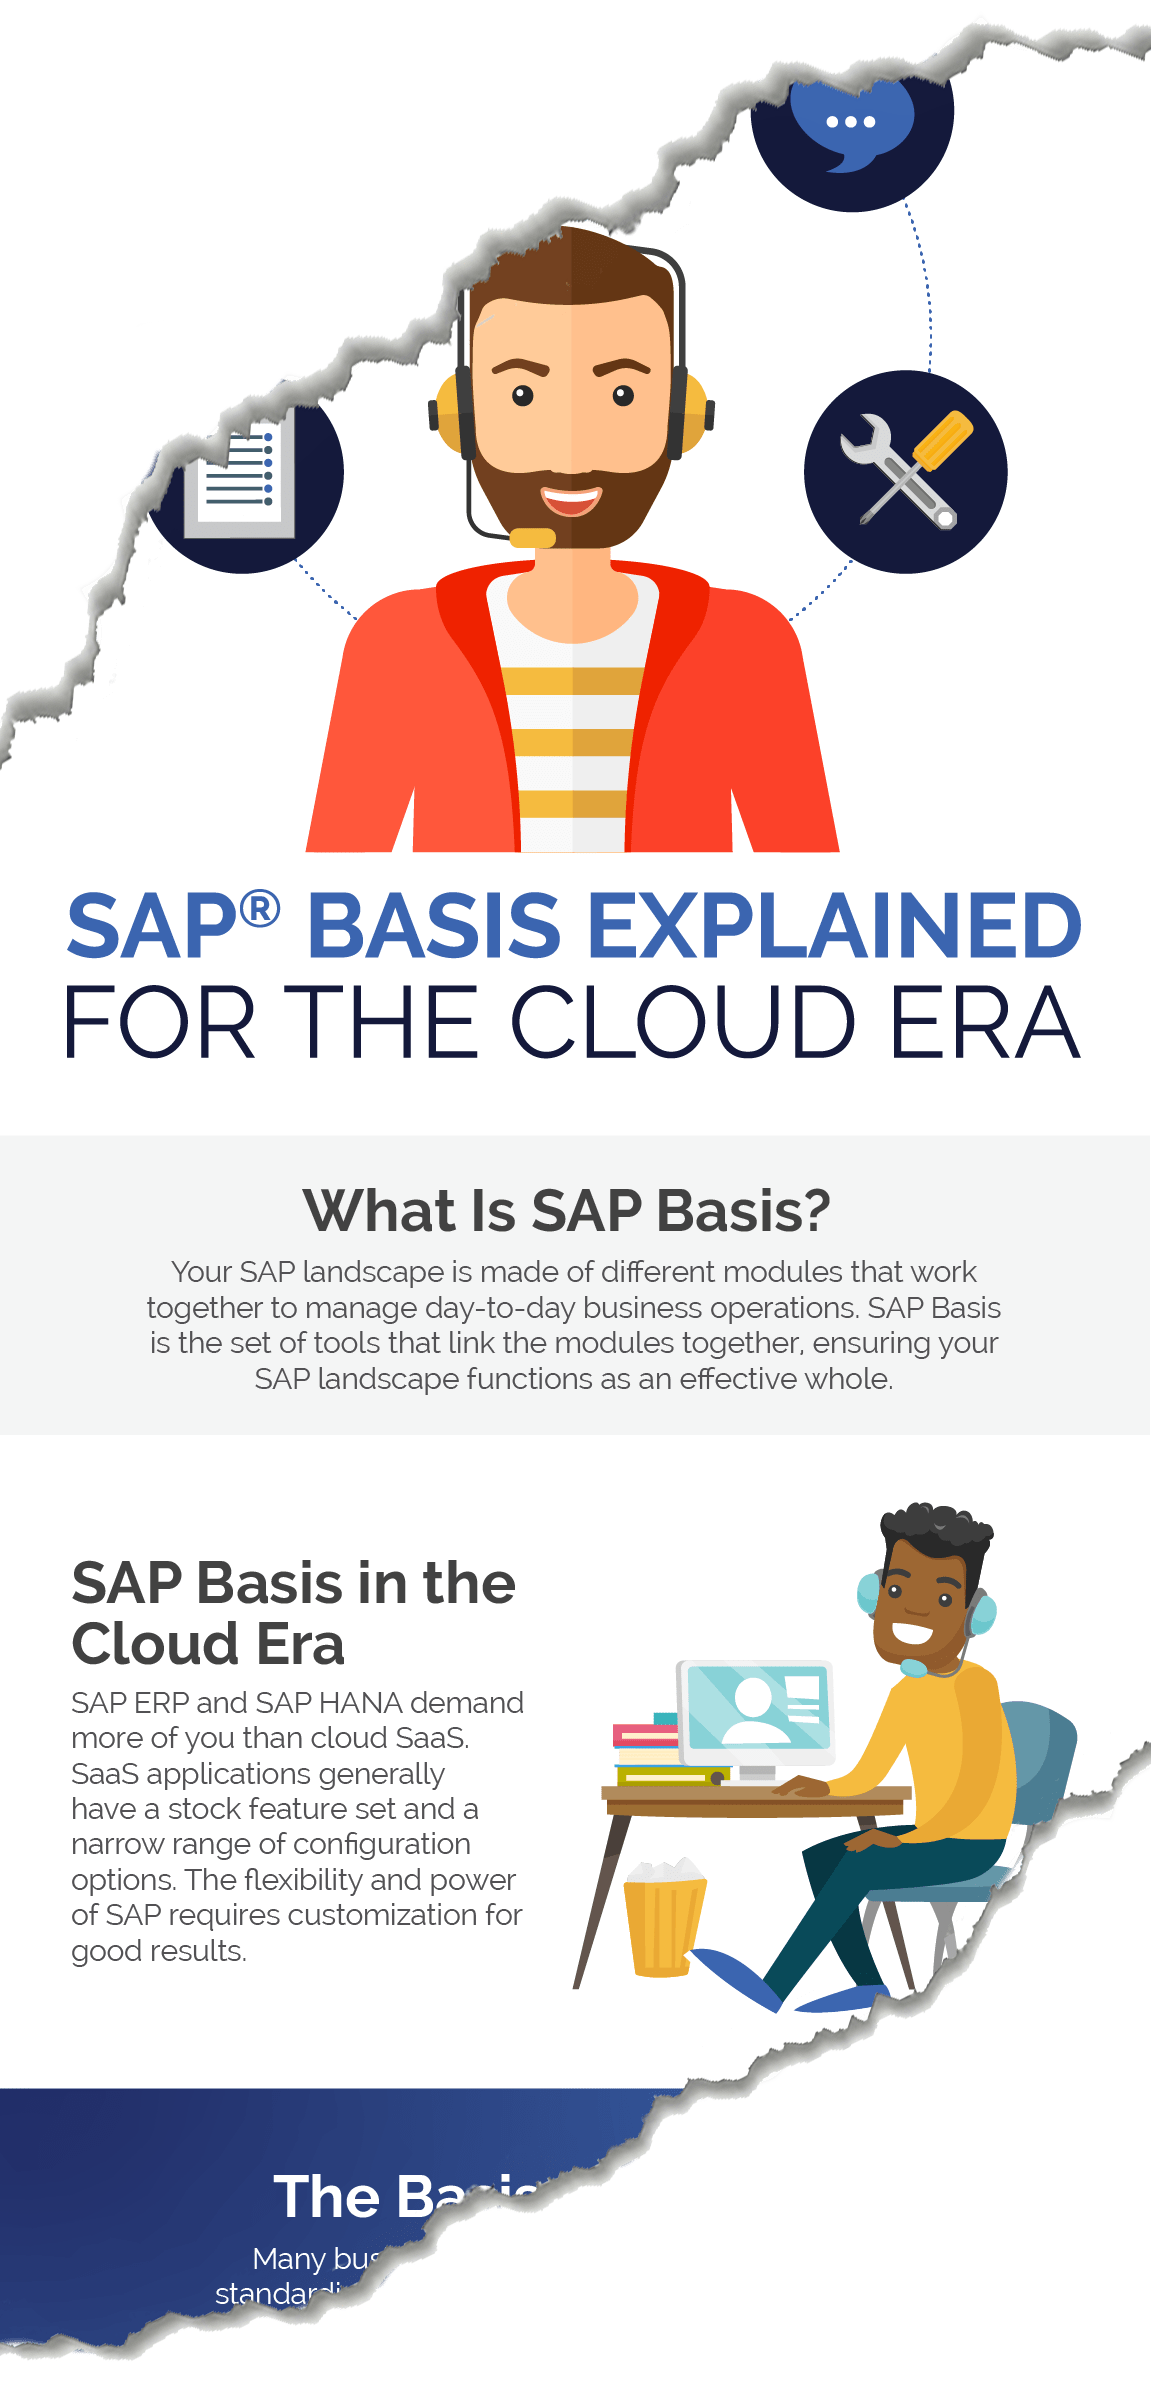 SAP Basis Explained